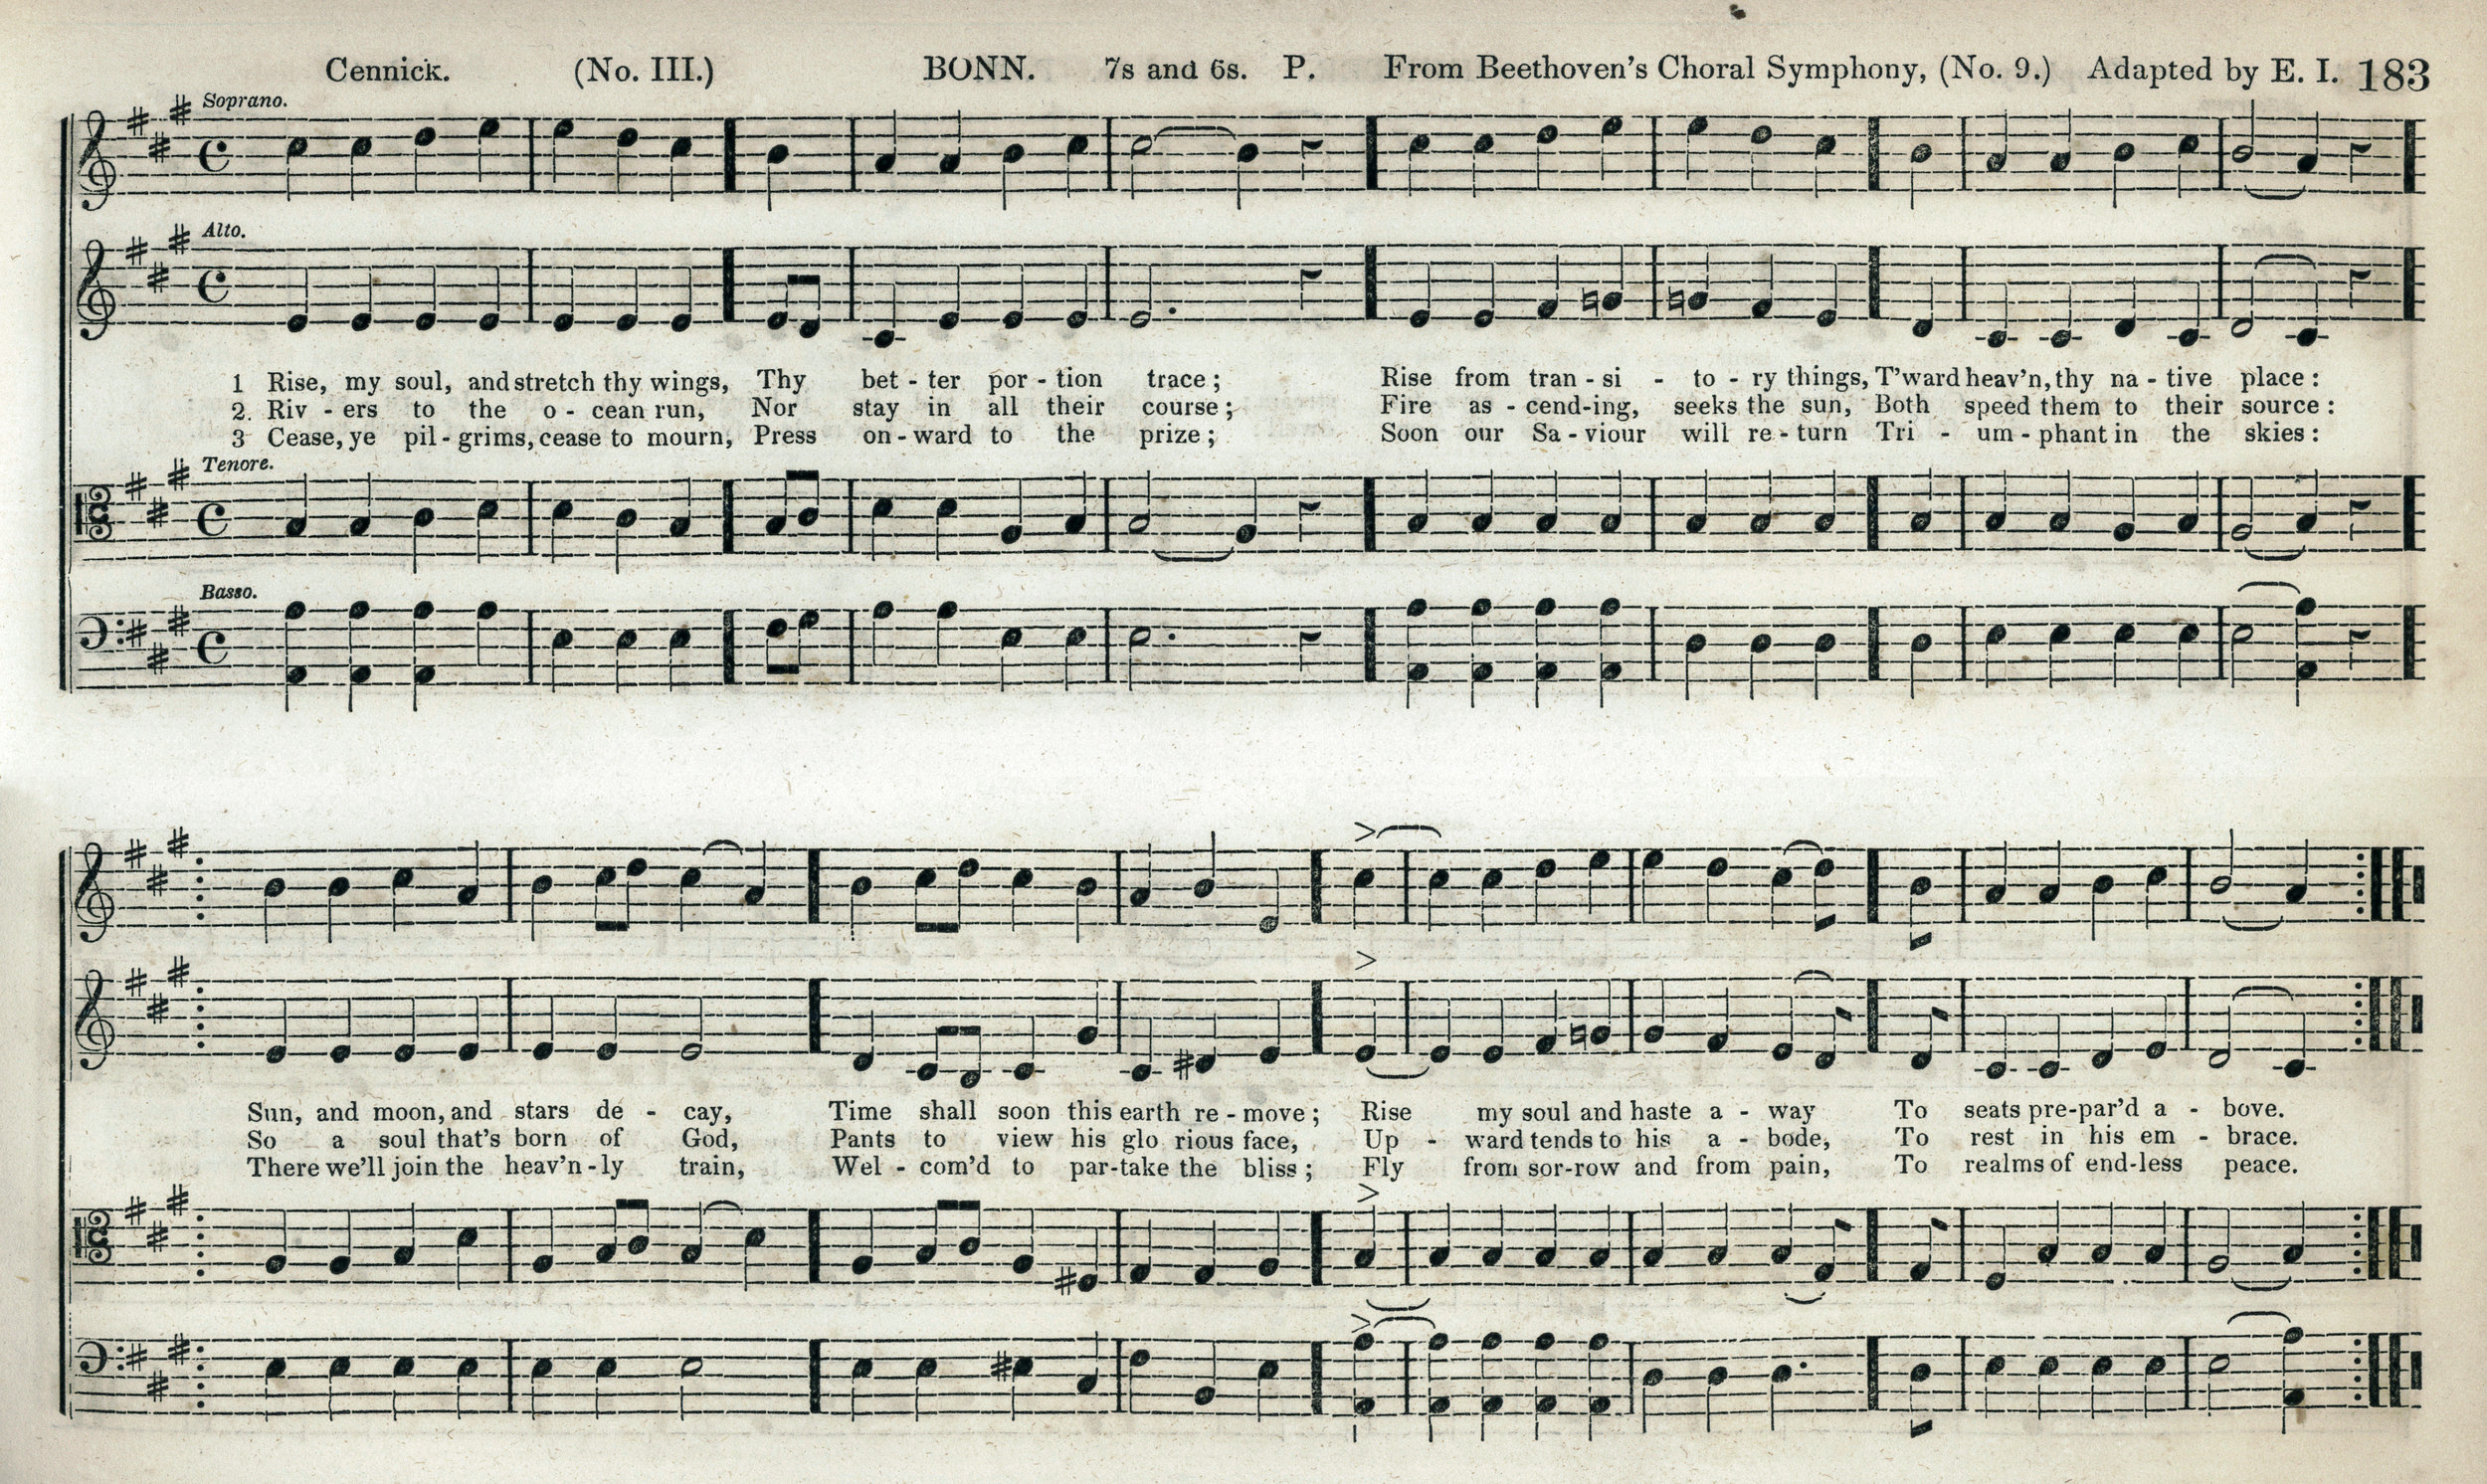 Fig. 5c.  E. Ives,  The Mozart Collection of Sacred Music  (NY: Paine & Burgess, 1846). Melody in the soprano part.